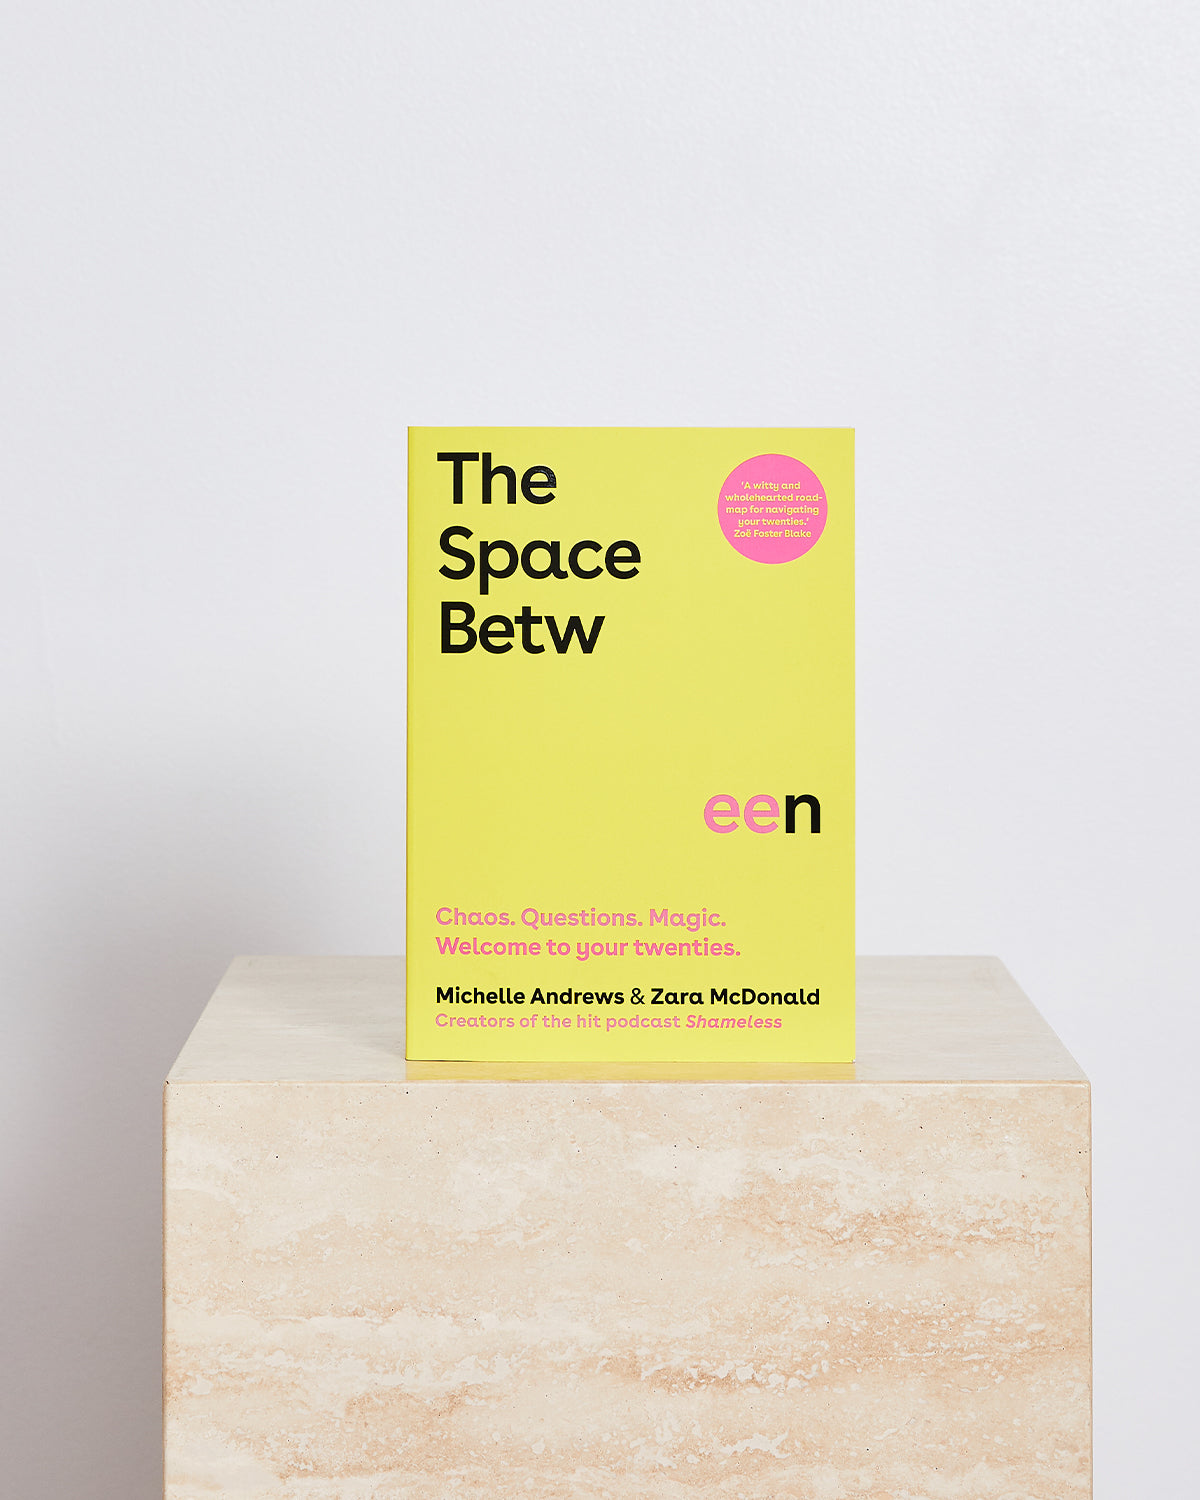 The Space Between by Michelle Andrews and Zara McDonald